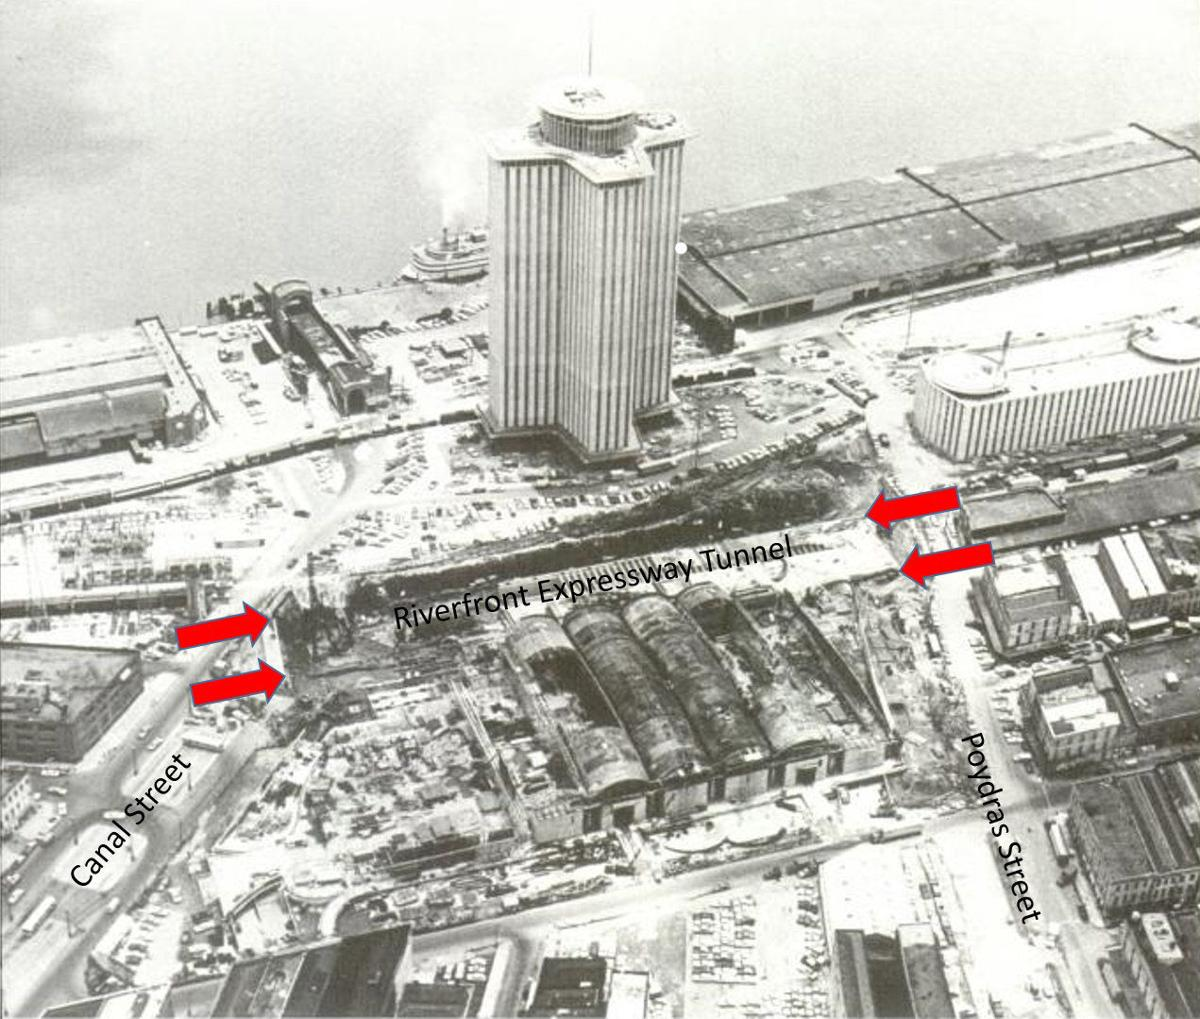 Tunnel vision: In 1966, New Orleans built a tunnel downtown hoping the traffic would come